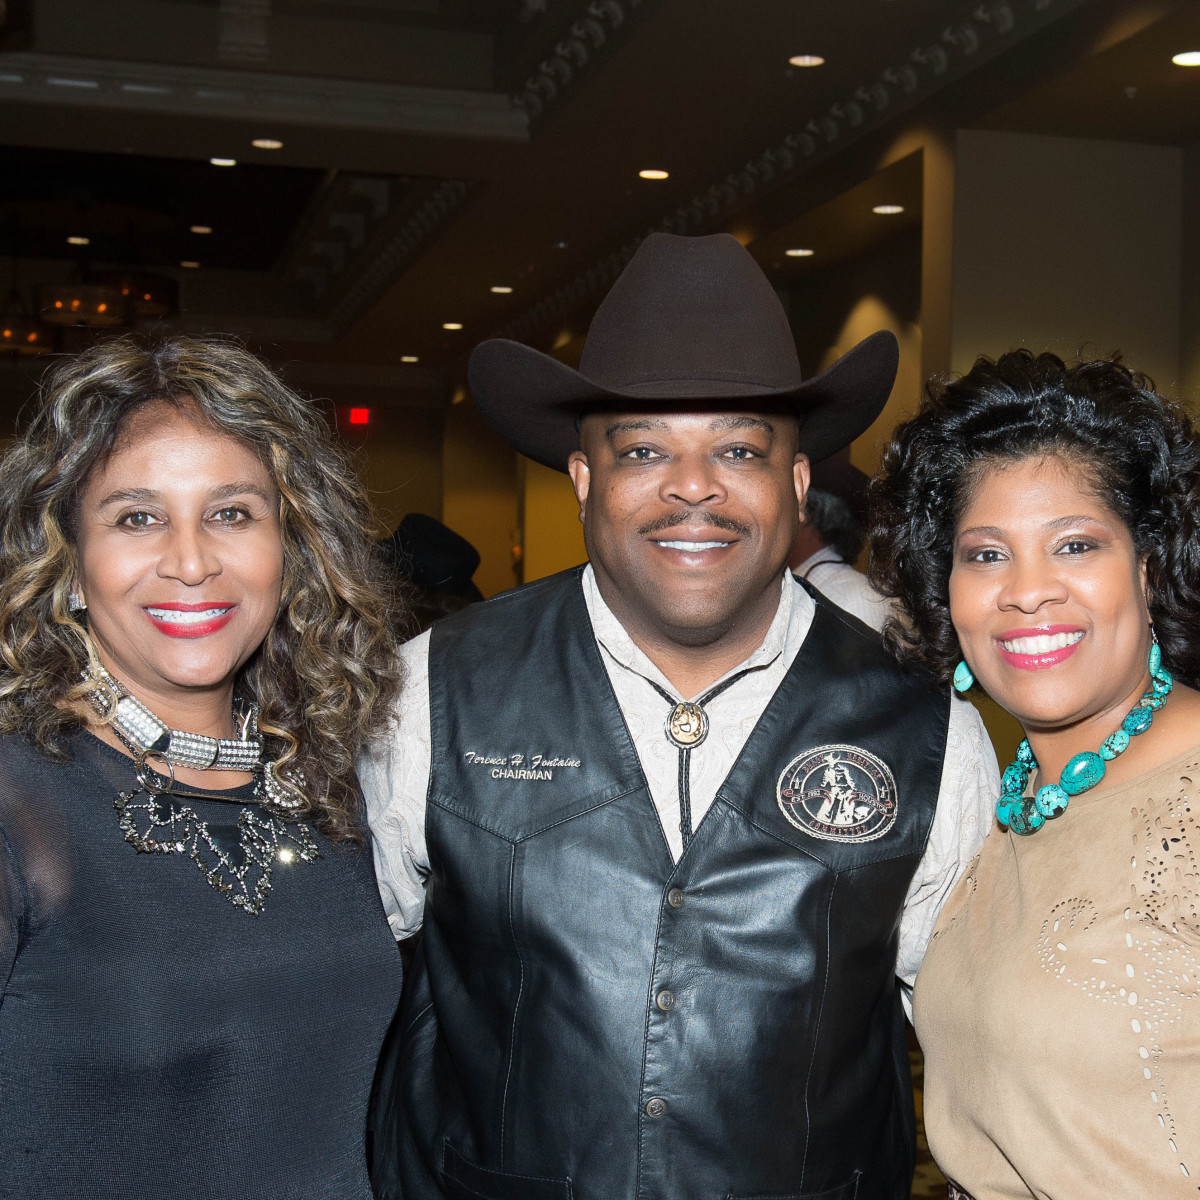 Boots and Bling Carolyn Alexander, Terrence and Diedre Fontaine